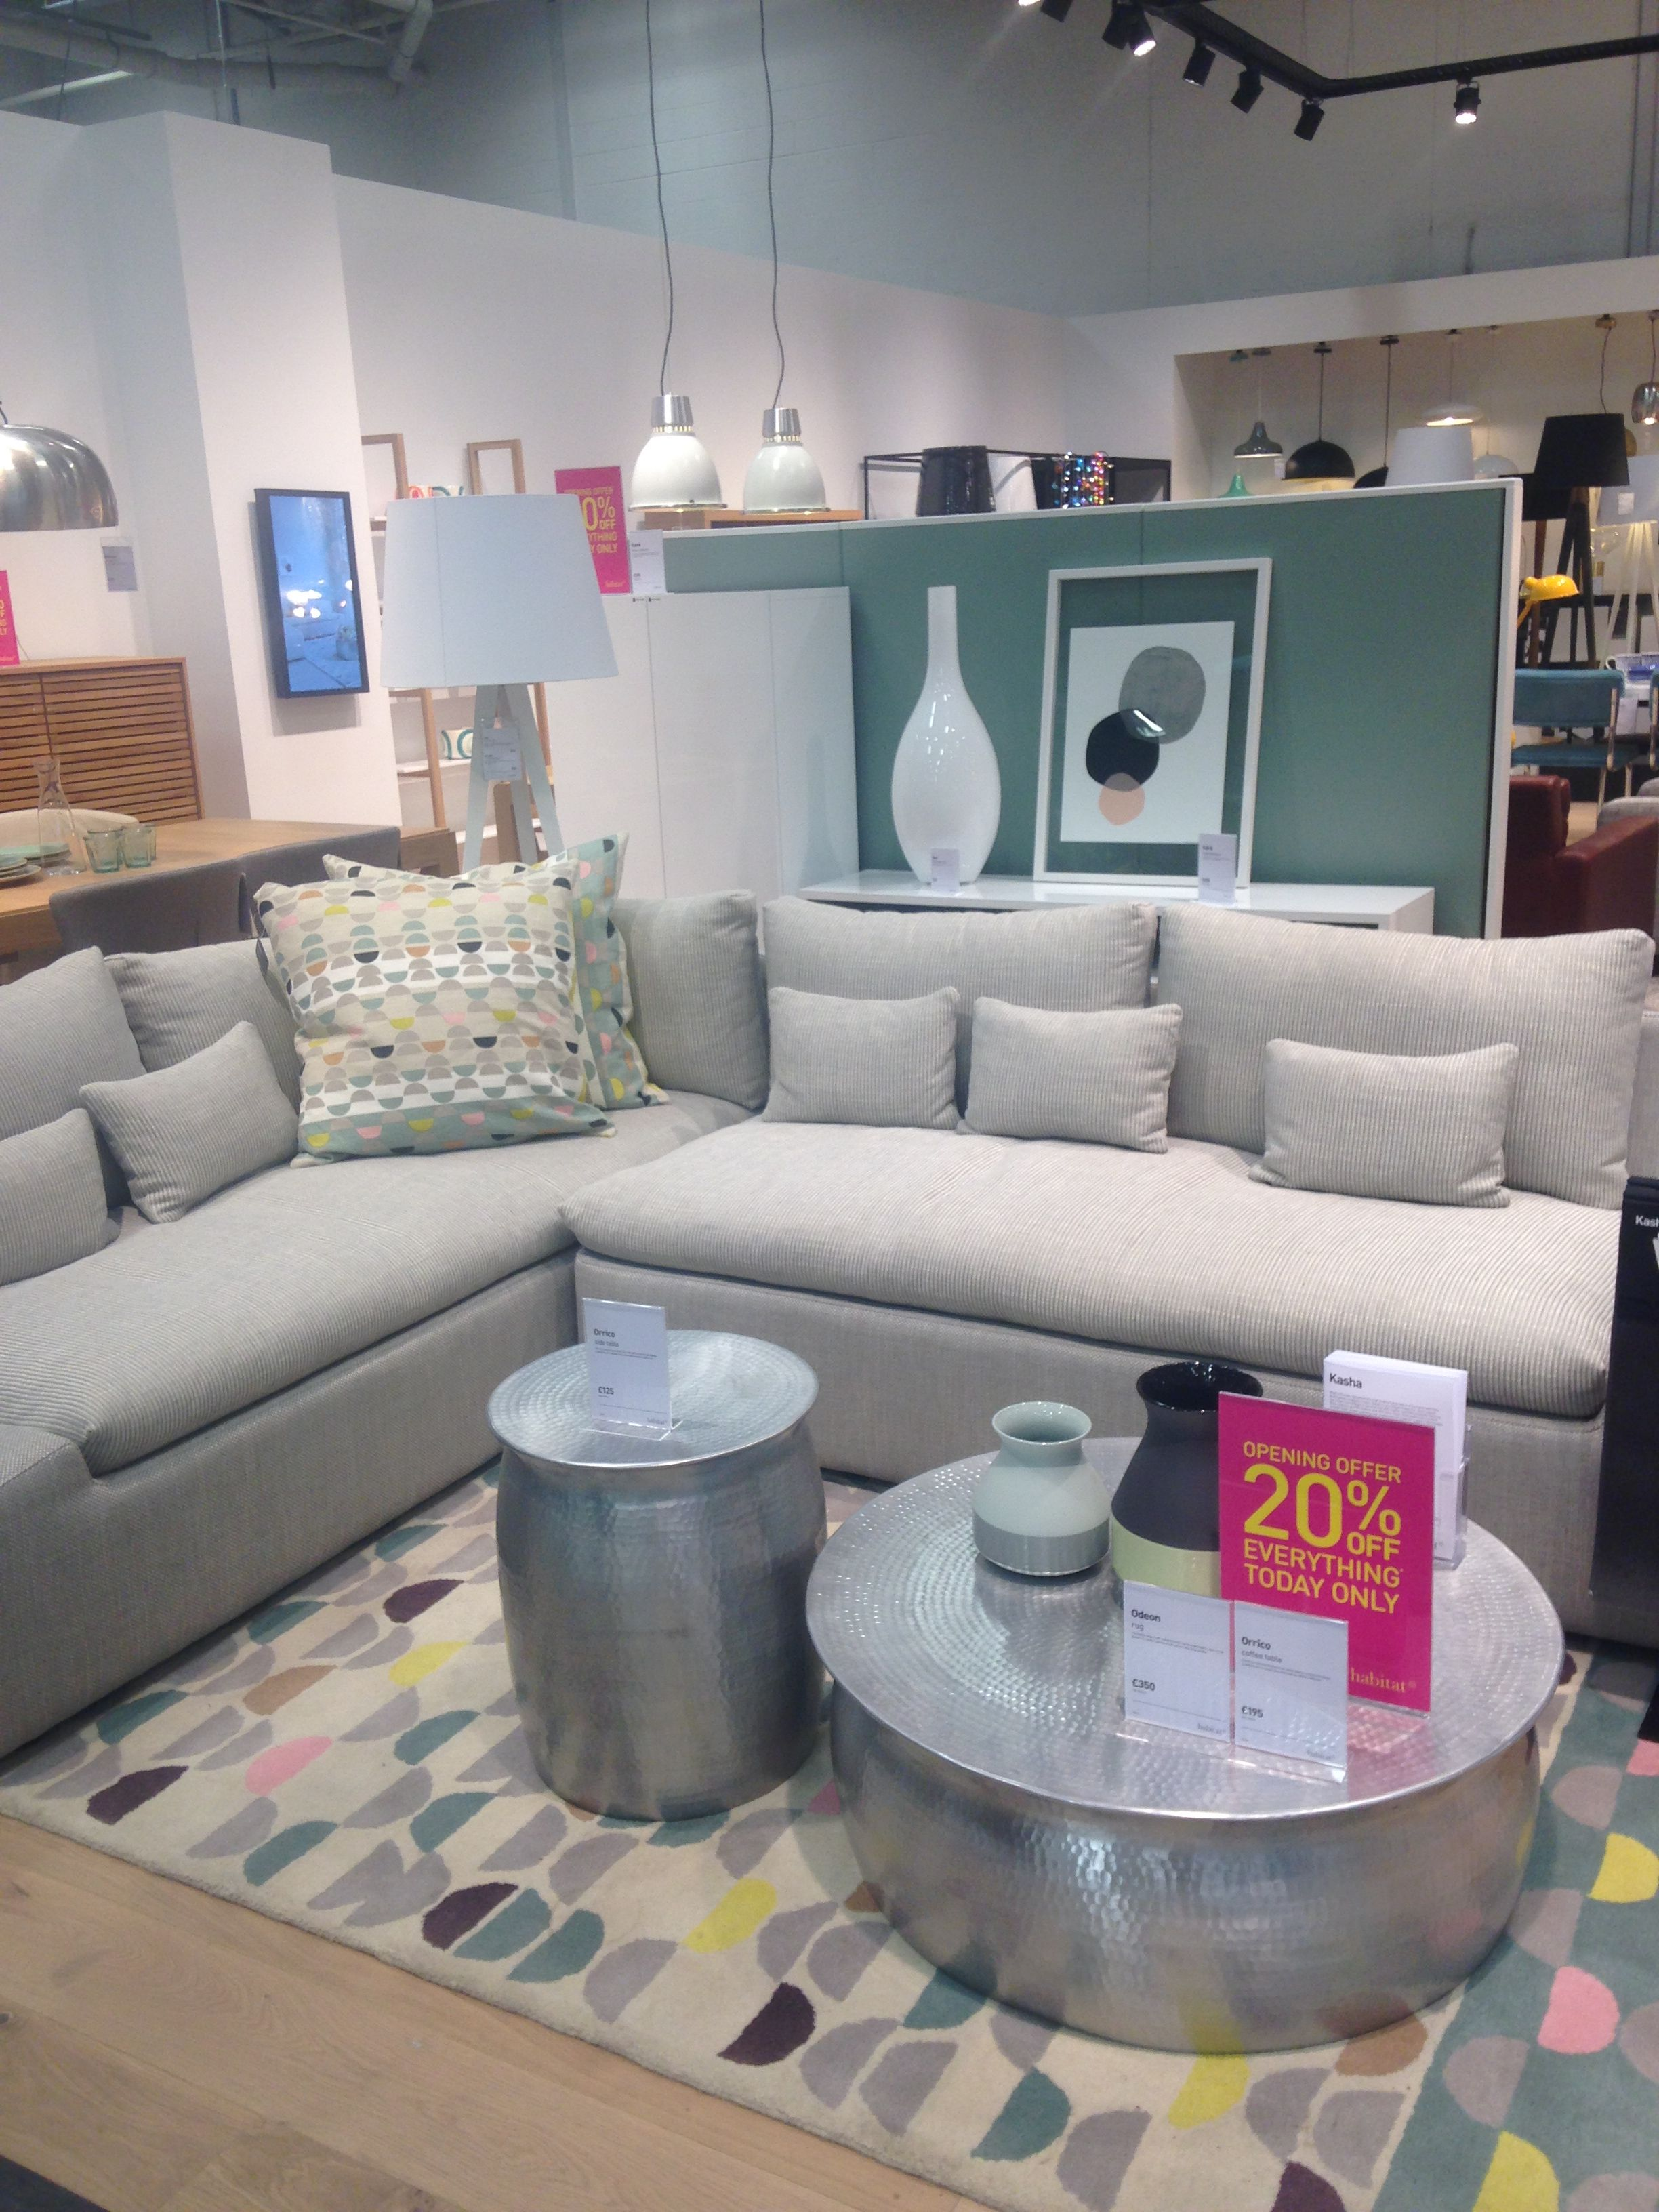 Divano Brian Jesse Prezzo The Kasha Sofa Has Always Been A Firm Customer Favourite With The